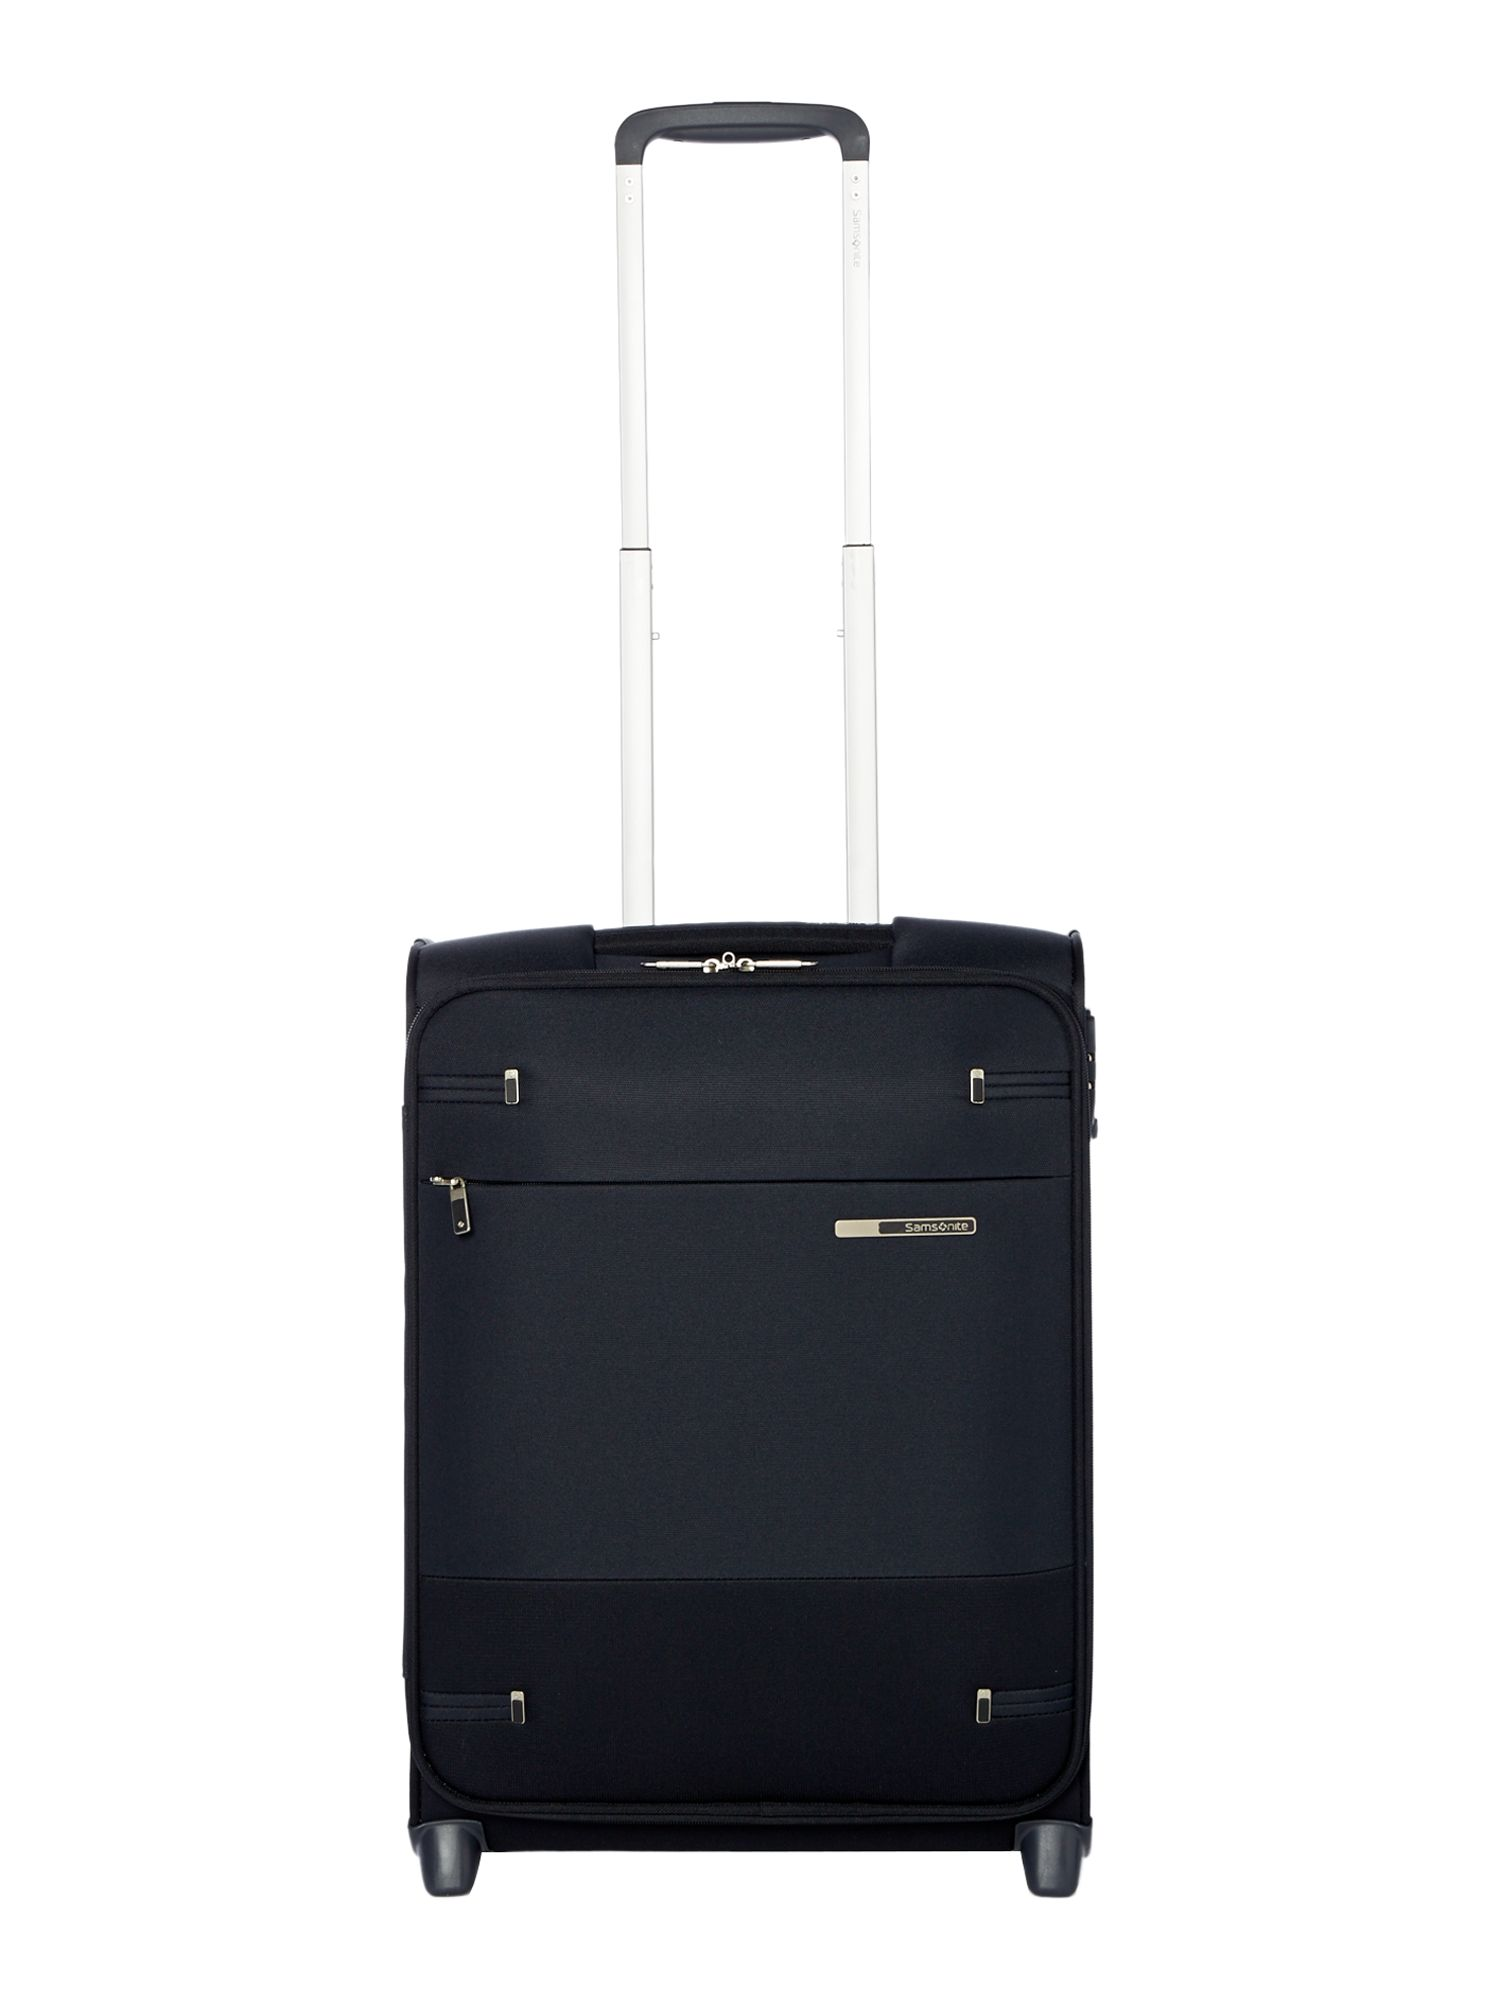 Samsonite BASE BOOST BLACK 2 WHEEL 55CM CABIN SUITCASE, Black